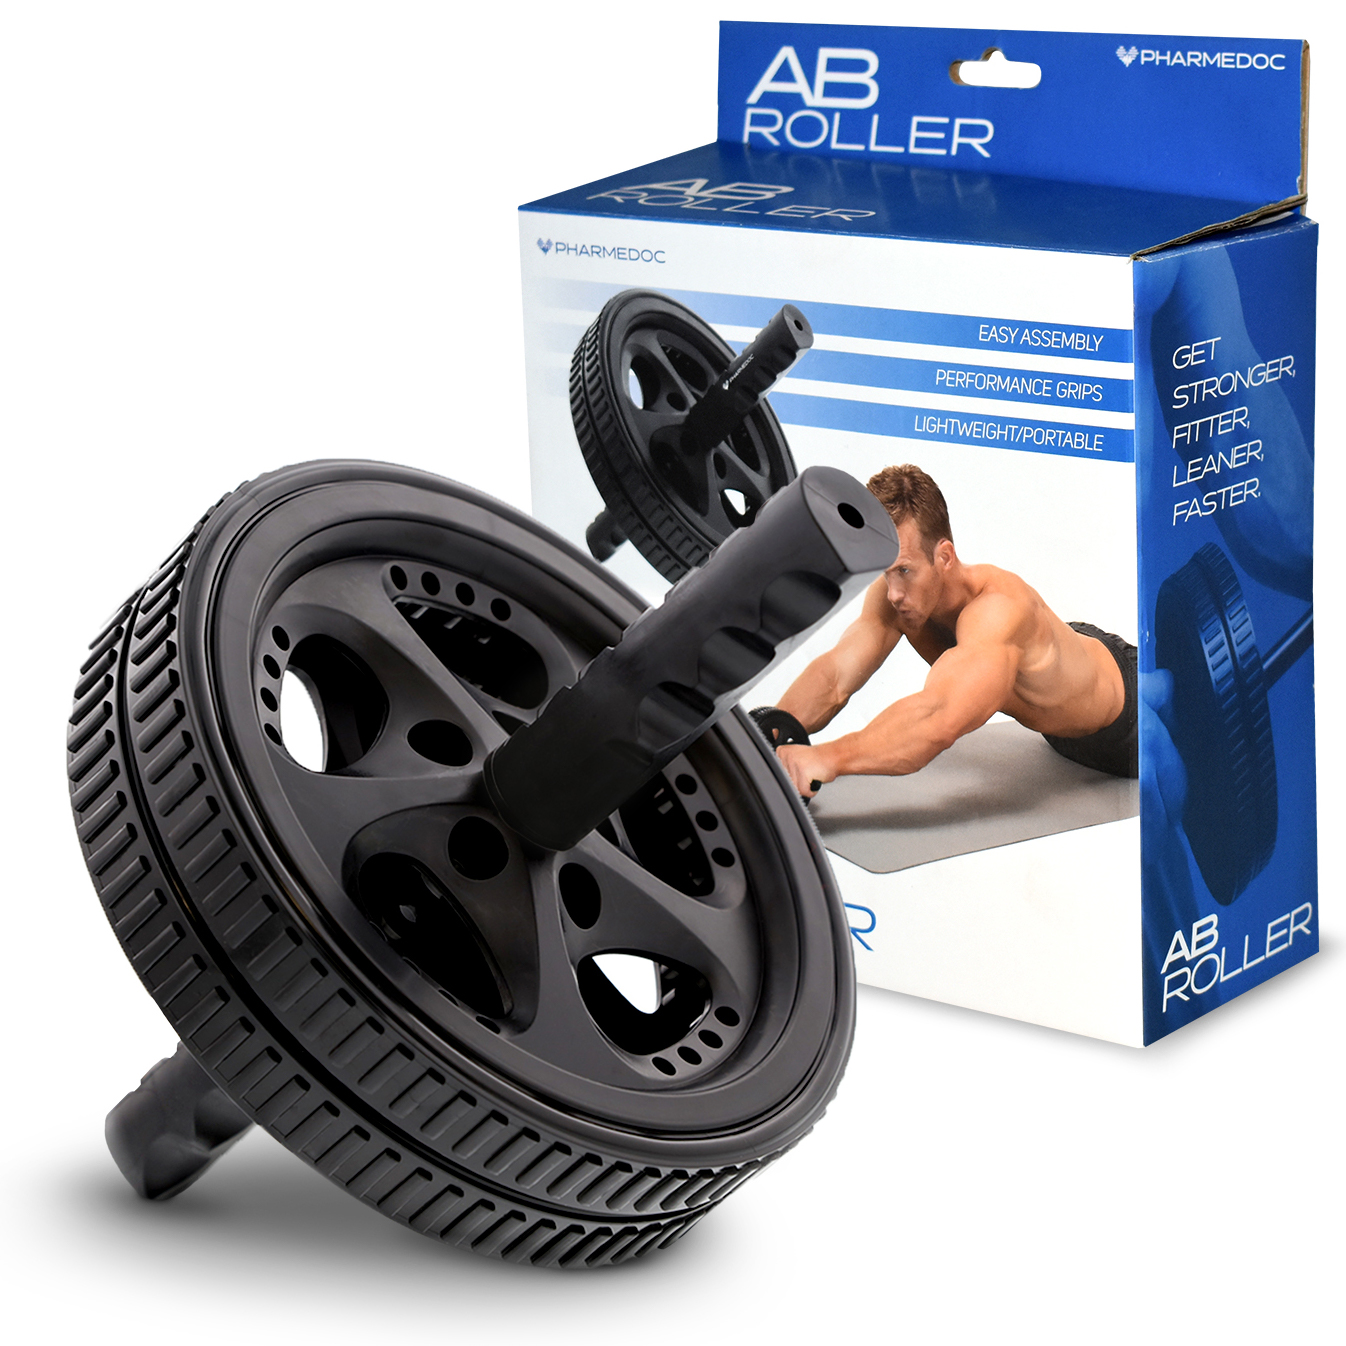 Ab Roller Wheel Ab Workout Equipment for Home Gym by PharMeDoc